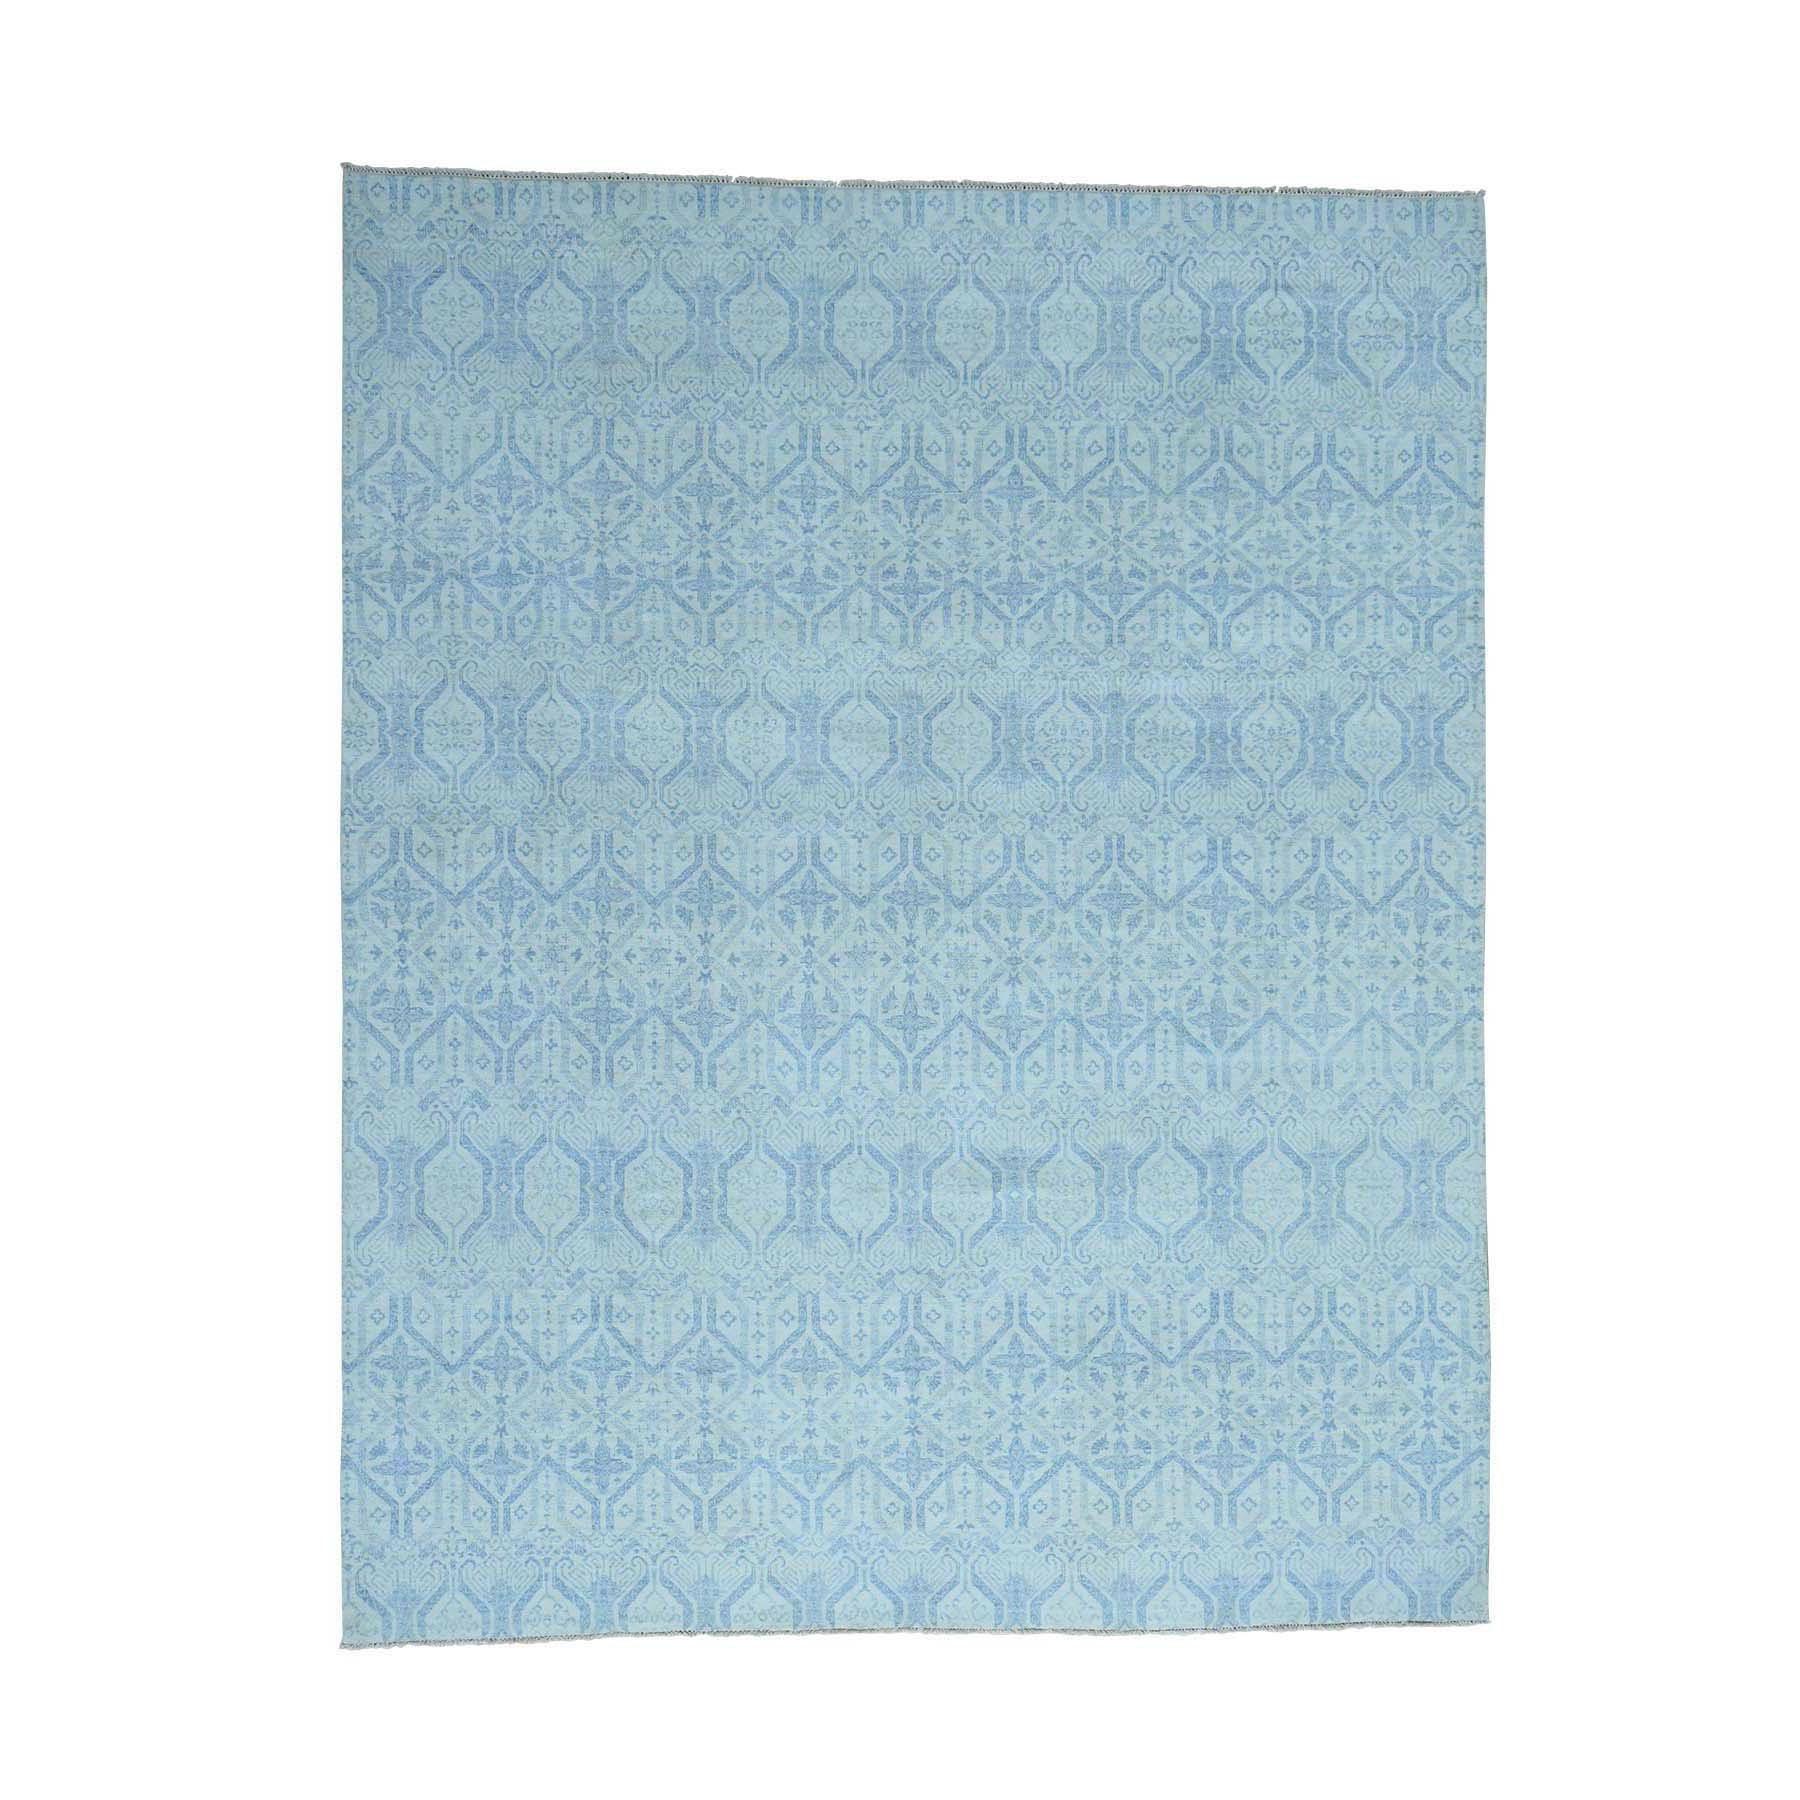 Ikat And Suzani DesignRugs ORC312498